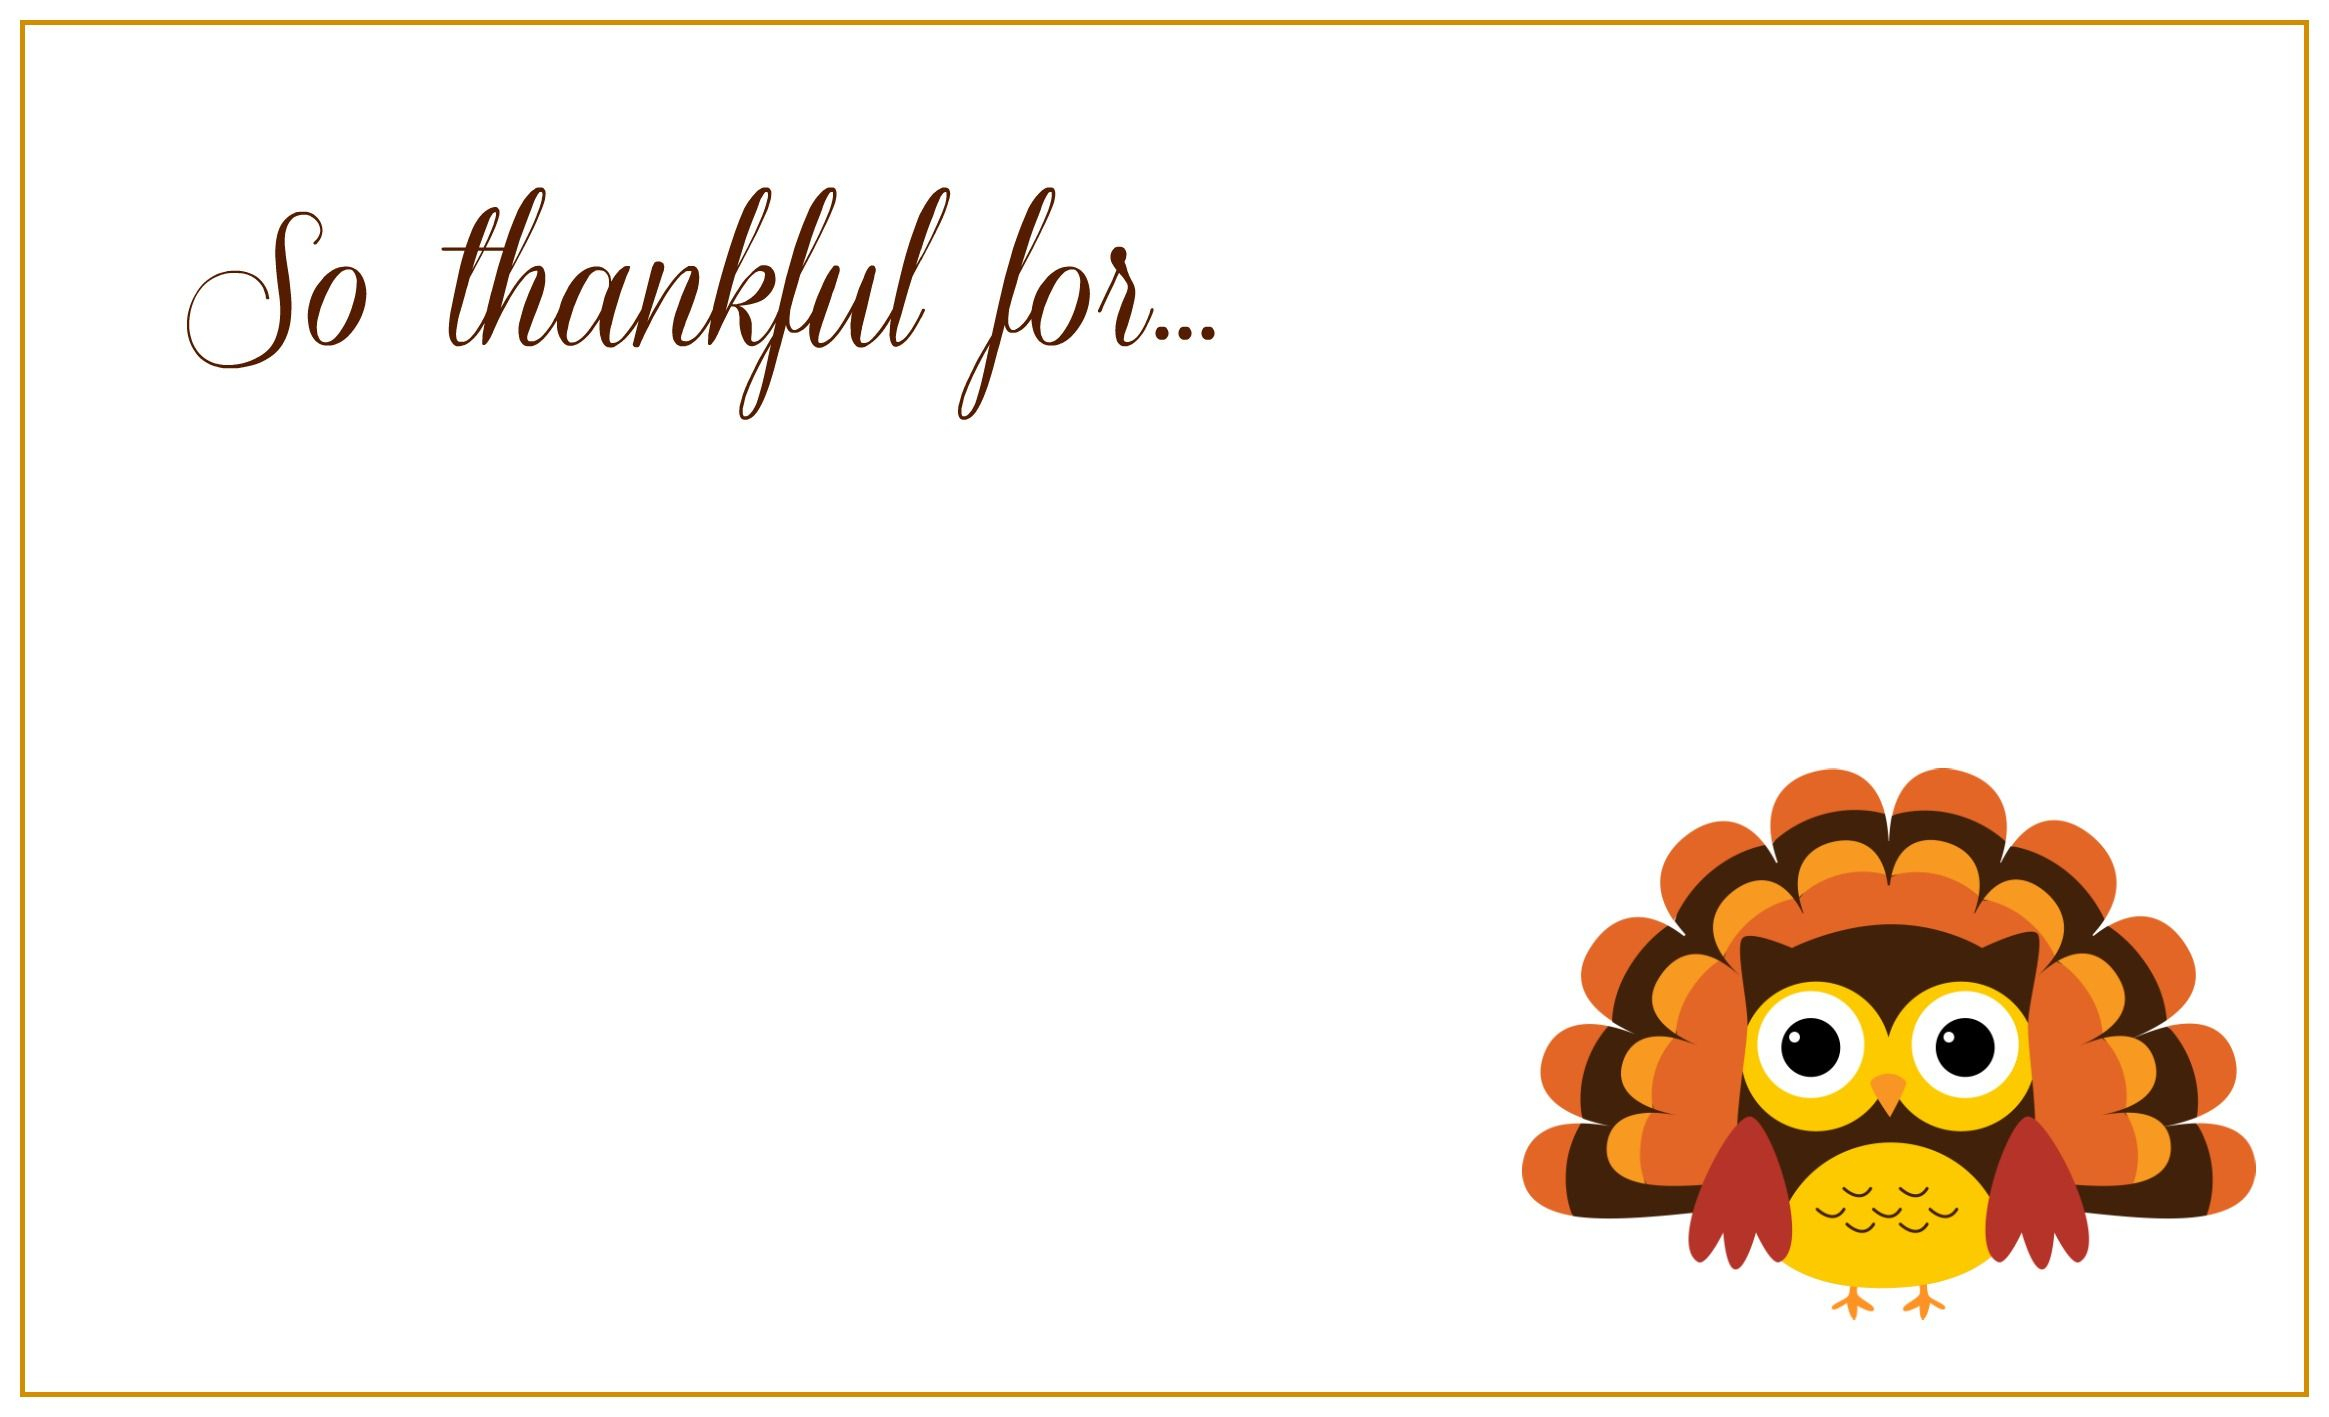 Free Printable Thanksgiving Greeting Cards | Thanksgiving Day - Happy Thanksgiving Cards Free Printable